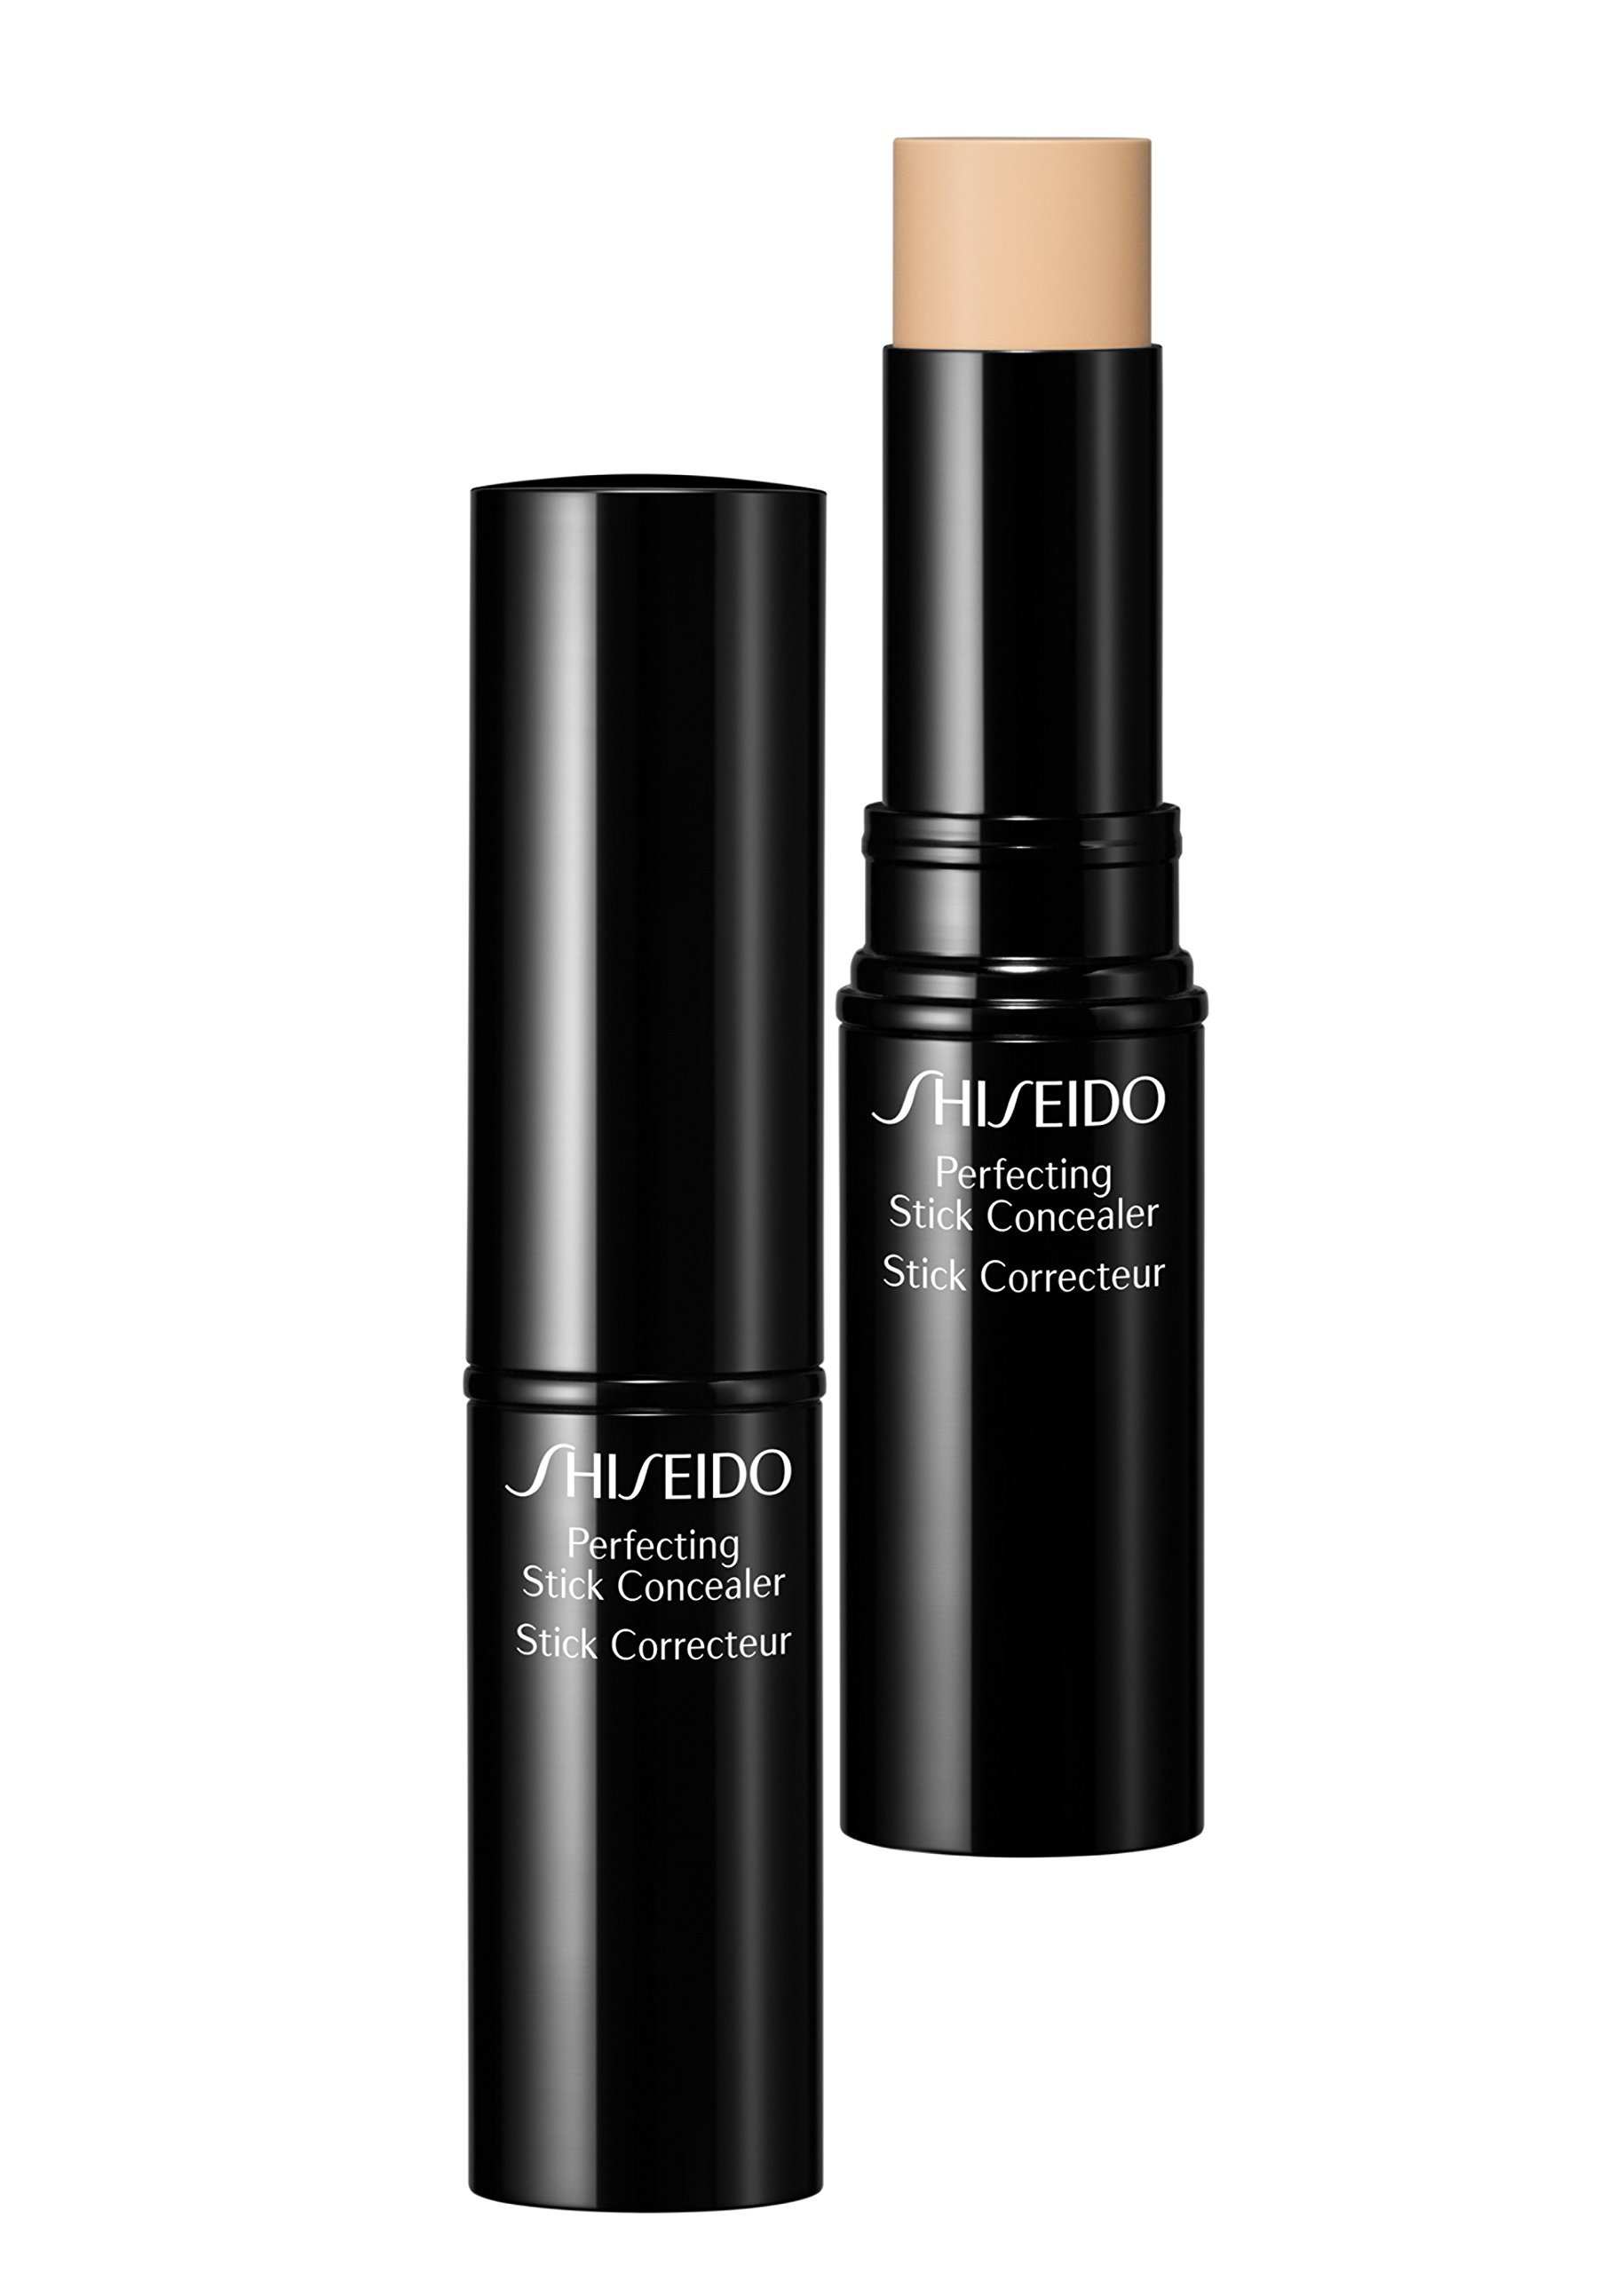 Shiseido Perfecting Stick Concealer for Women, No. 33 Natural, 0.17 oz